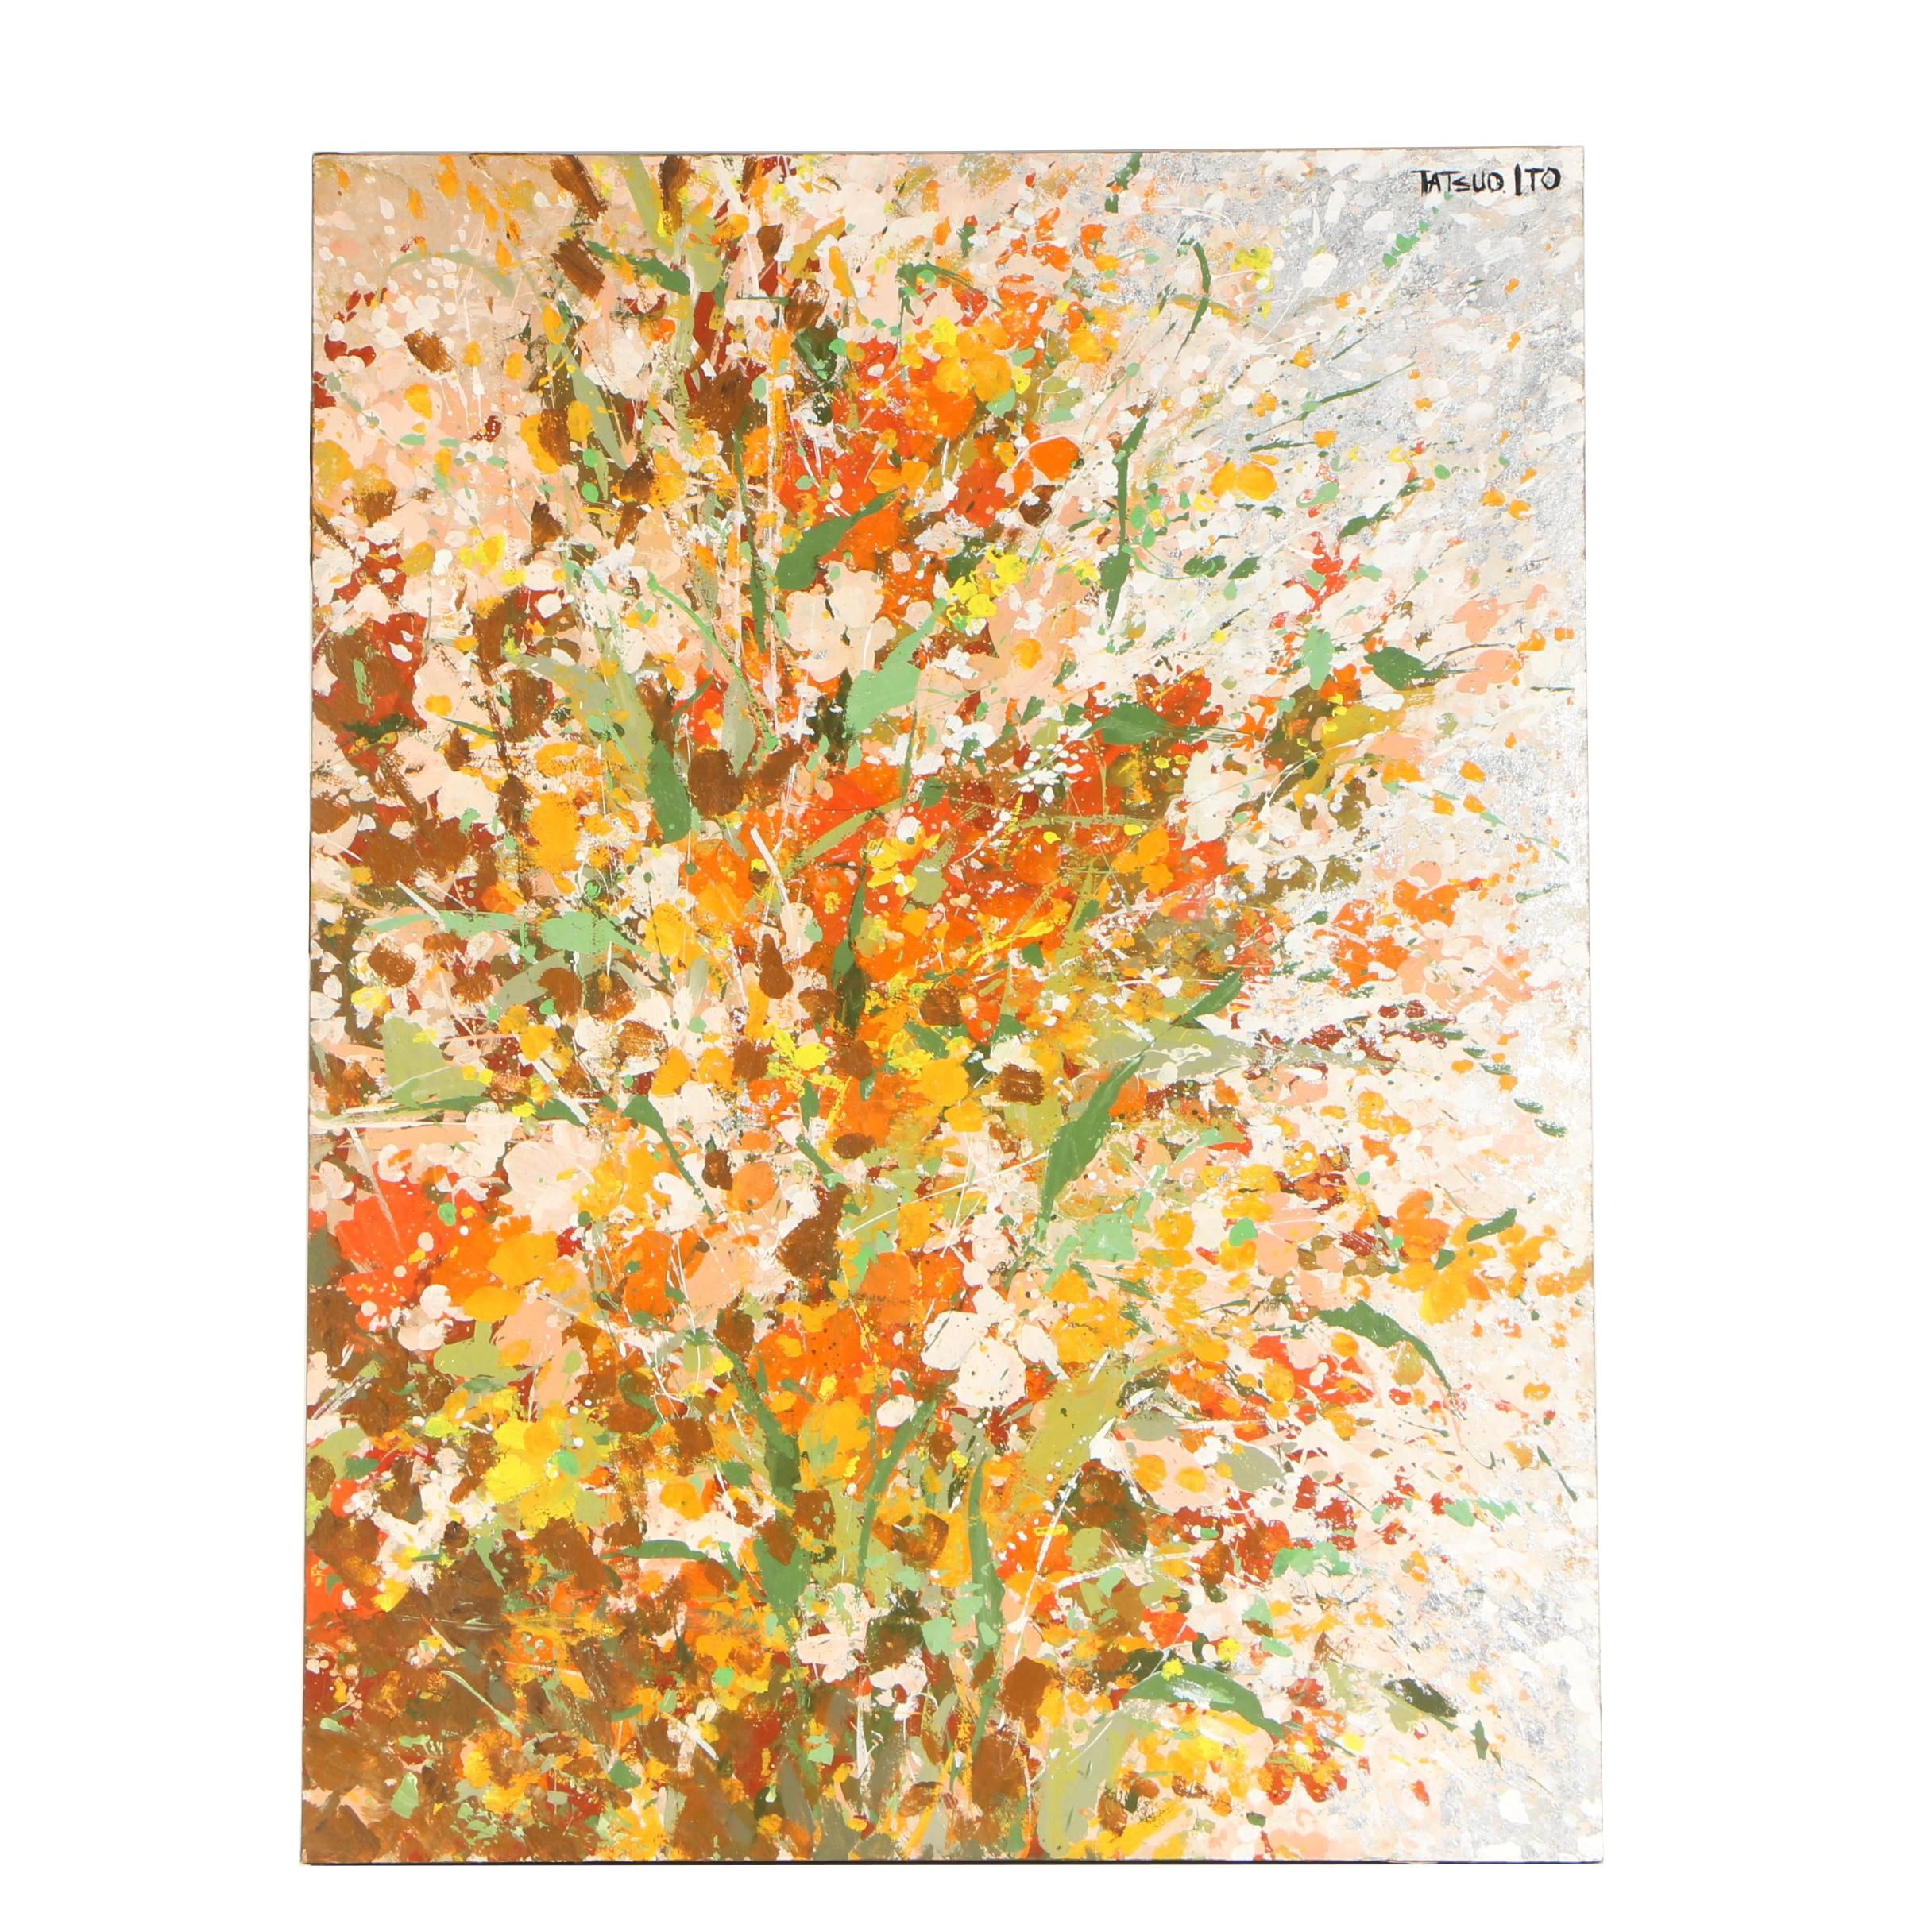 Tatsuo Ito Floral Abstract Oil Painting on Wood Panel